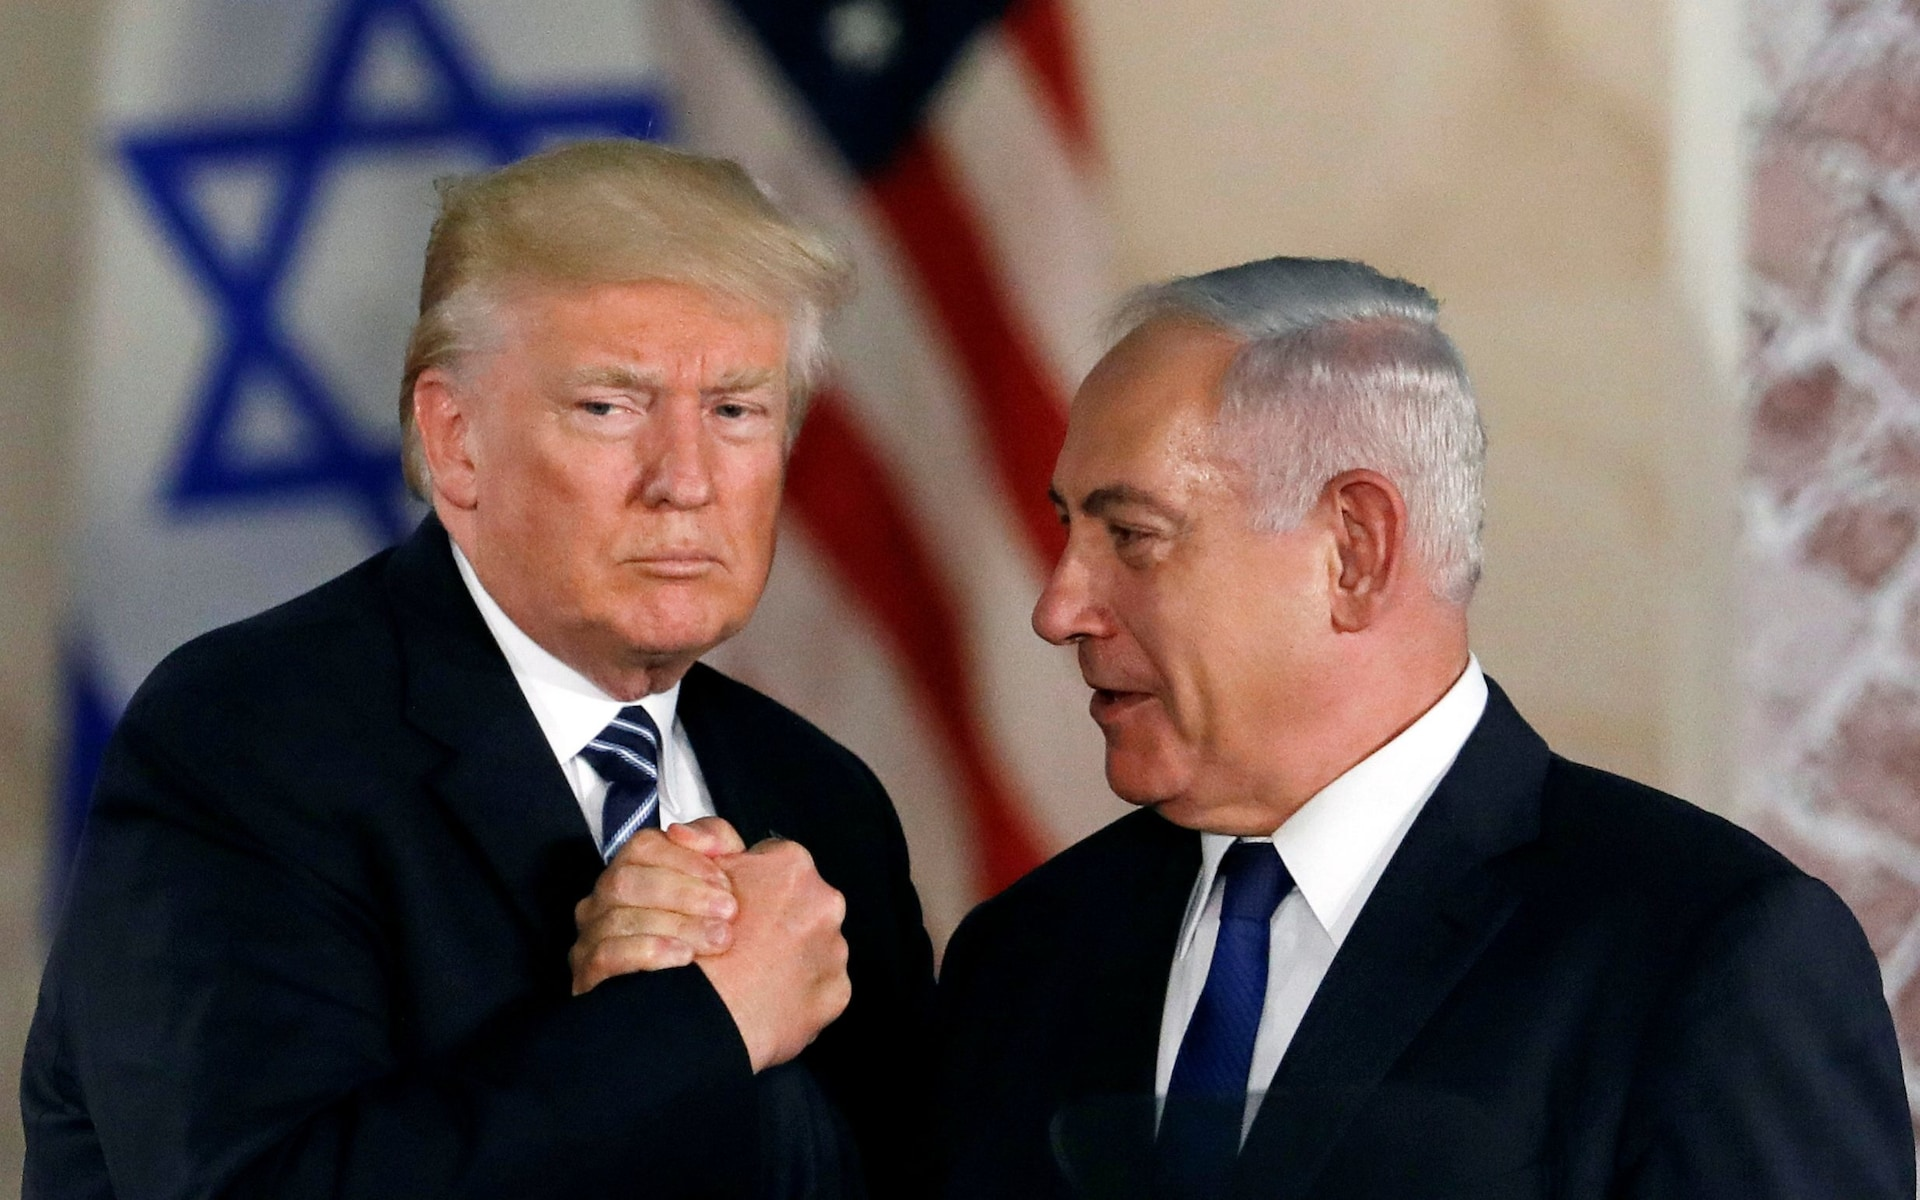 Jerusalem is not for sale Palestinians  warn Donald Trump as he threatens to cut aid over ailing peace talks